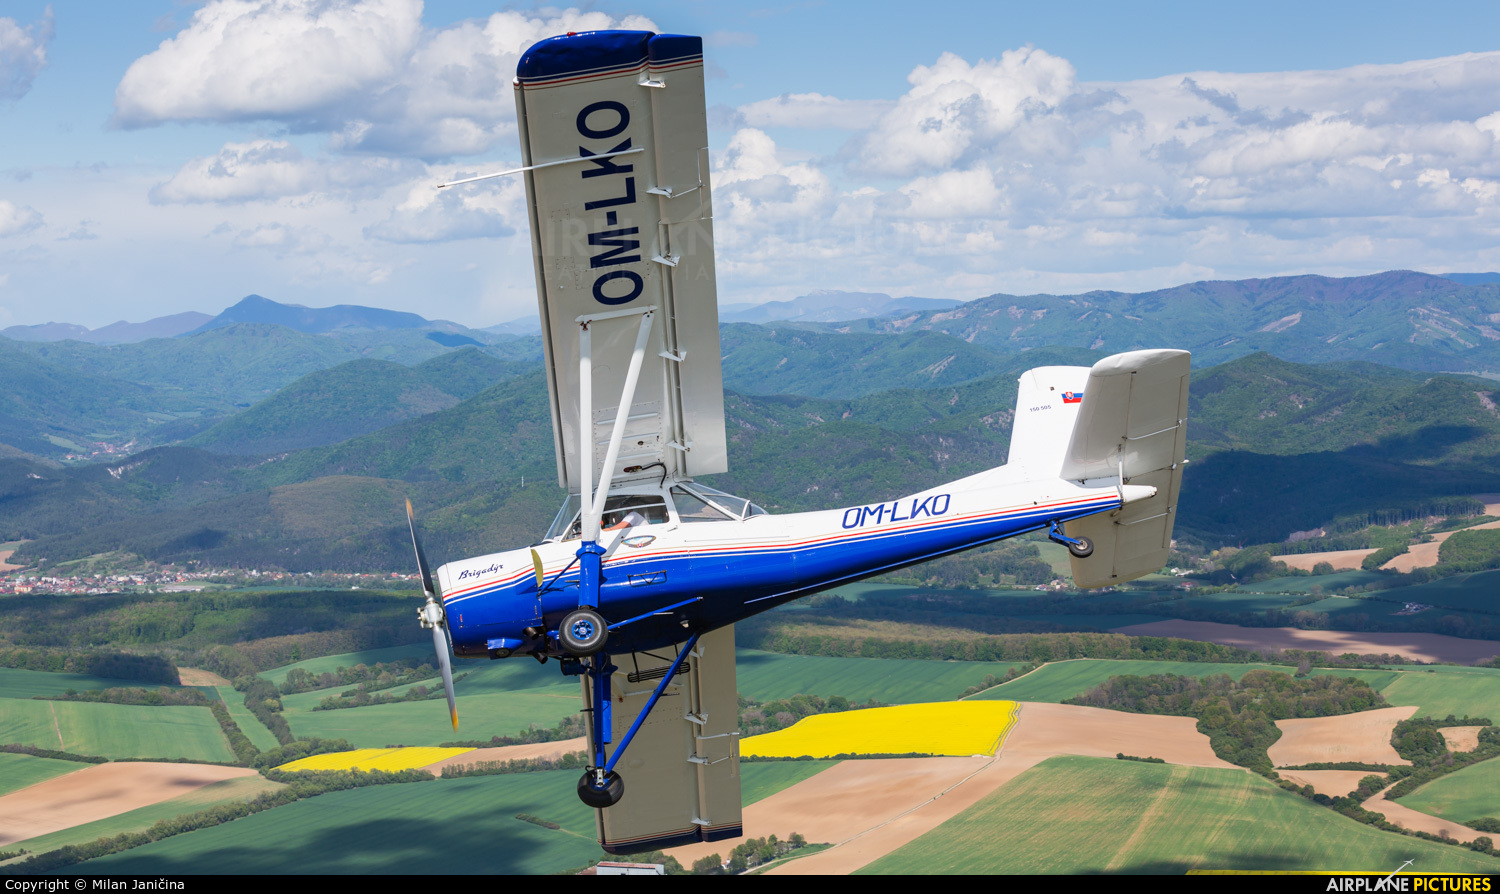 Private OM-LKO aircraft at In Flight - Slovakia